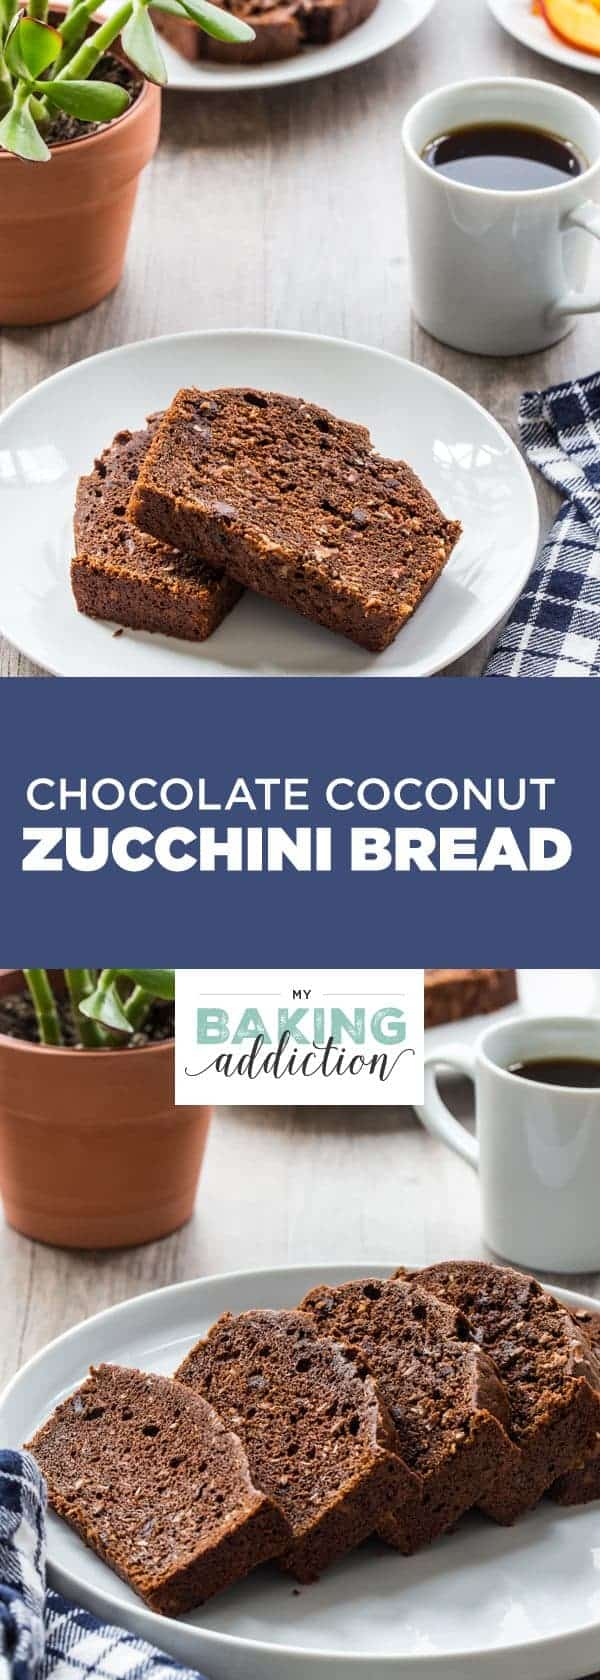 Chocolate Coconut Zucchini Bread has a perfect texture from the zucchini. The chocolate and coconut add an amazing richness. You'll make this one again and again!